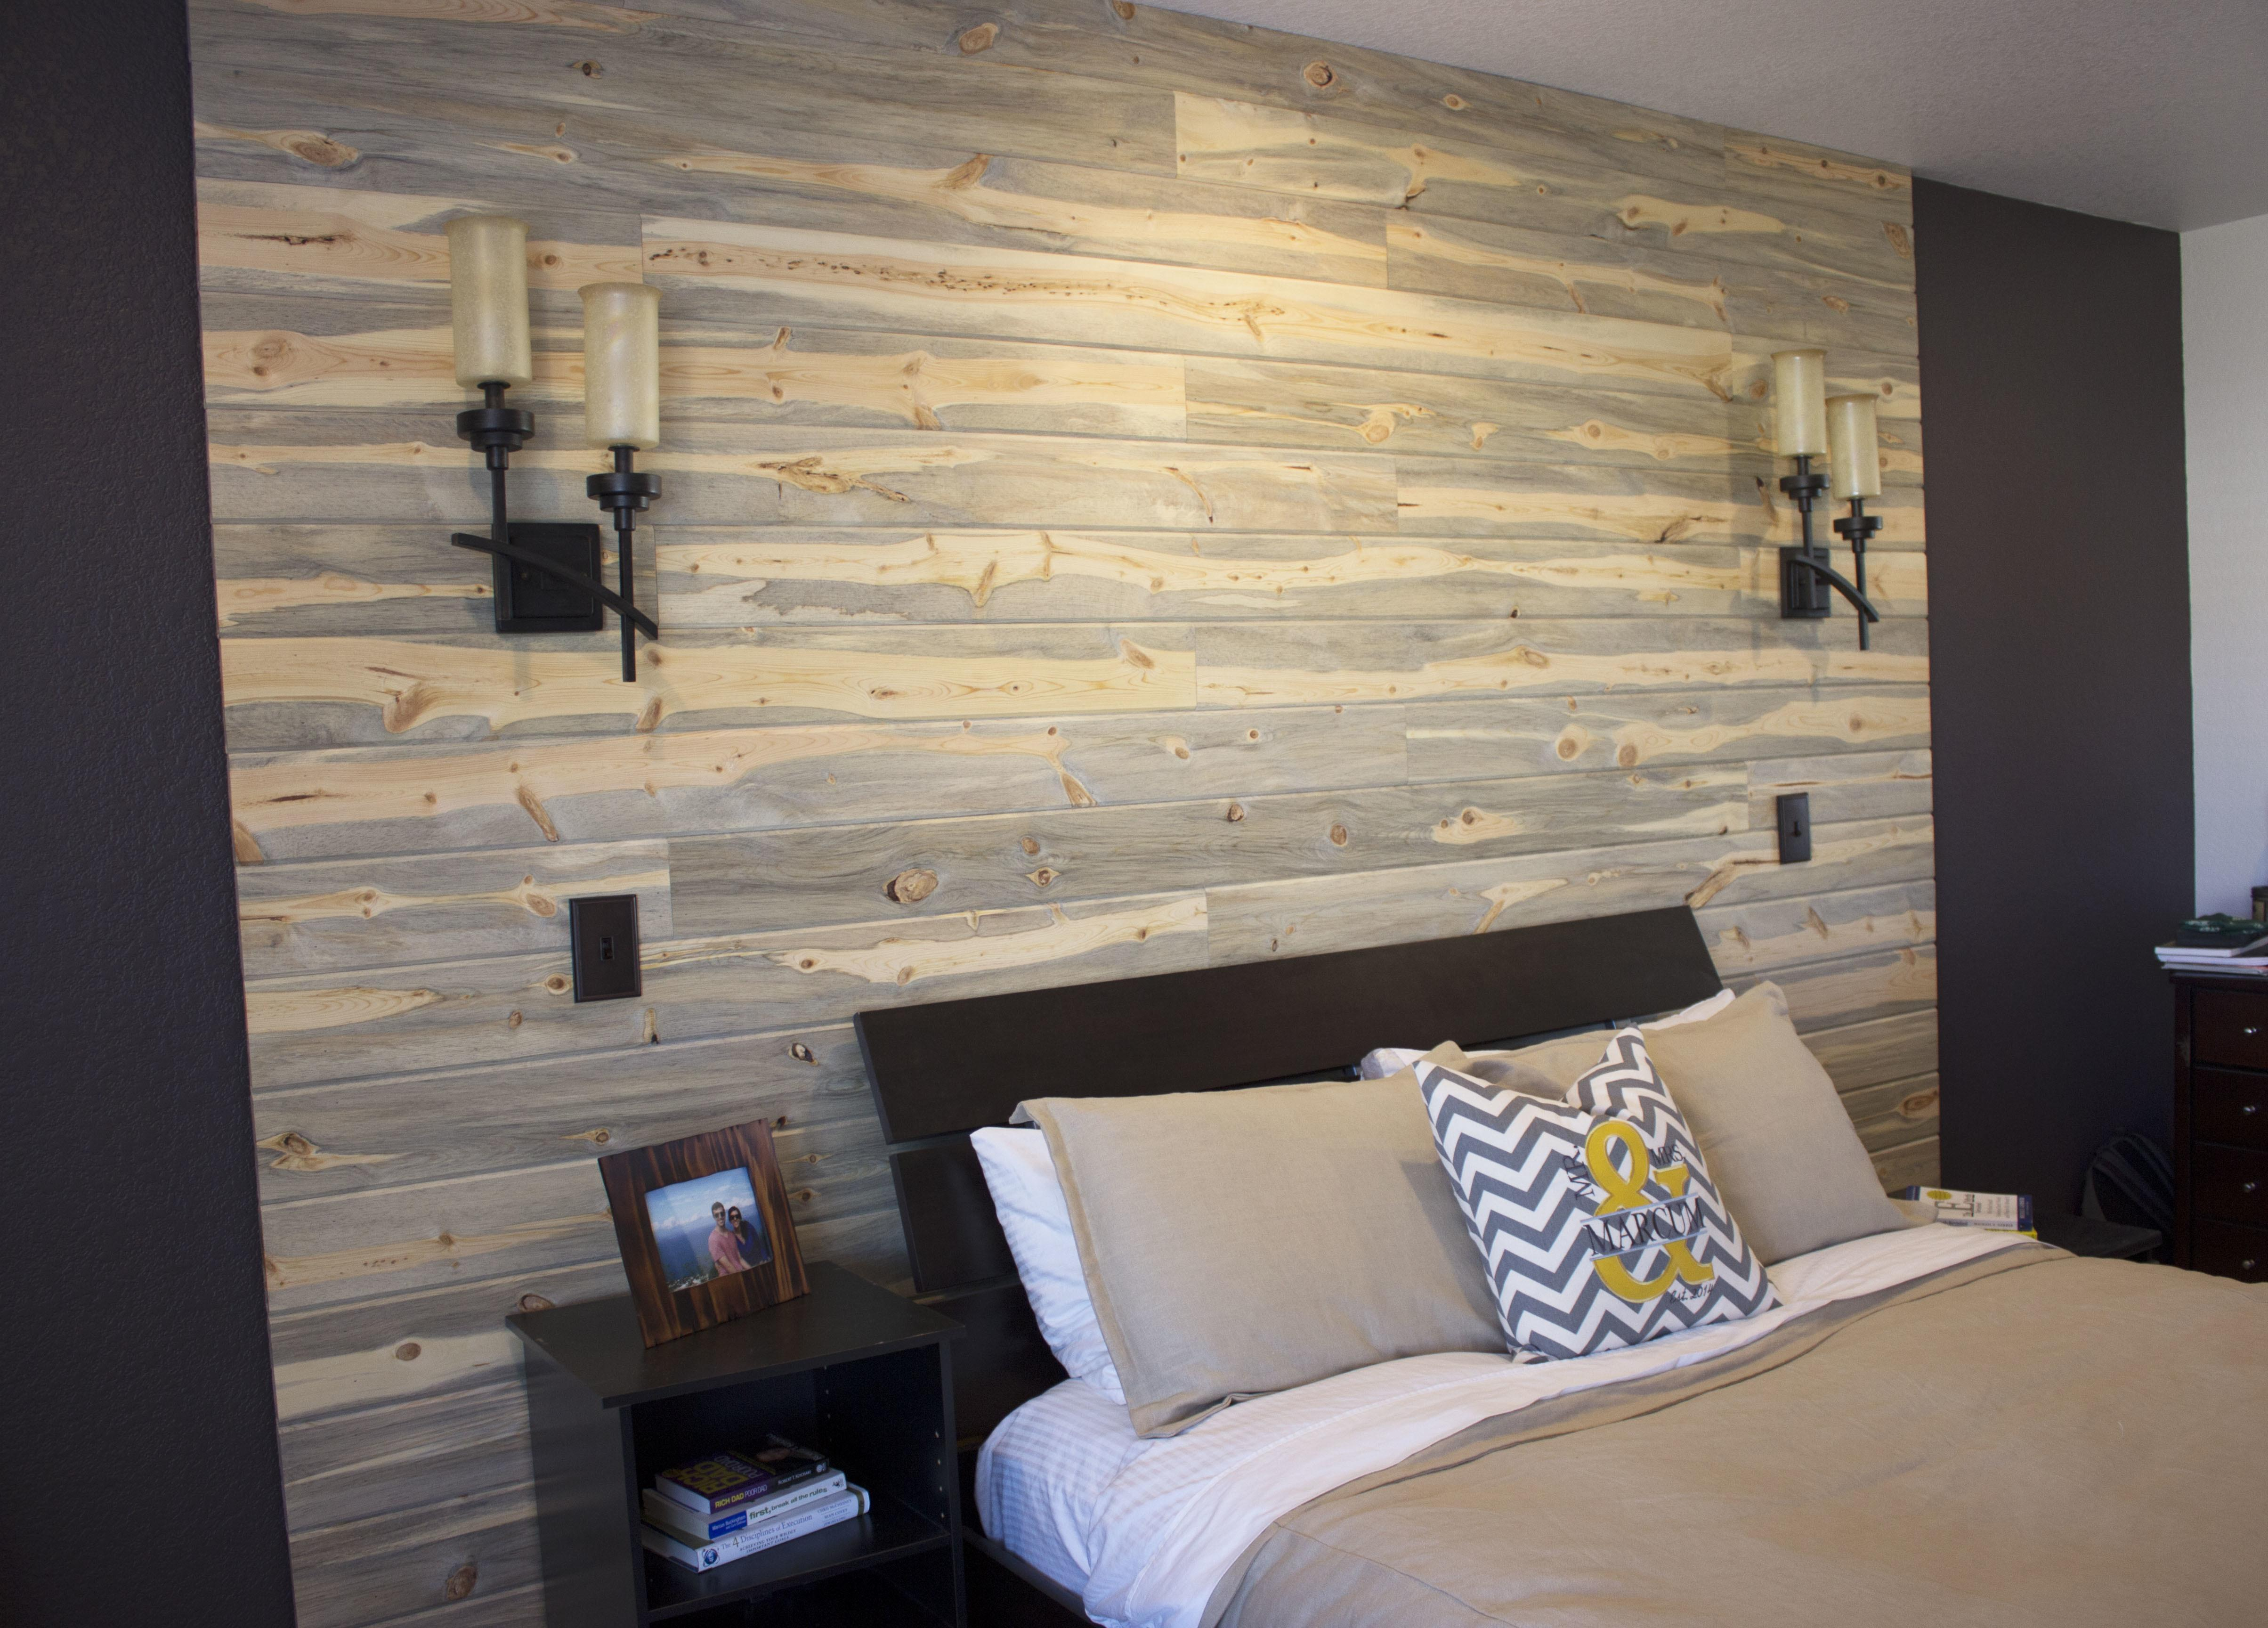 Pallets Planks Build Wall Day